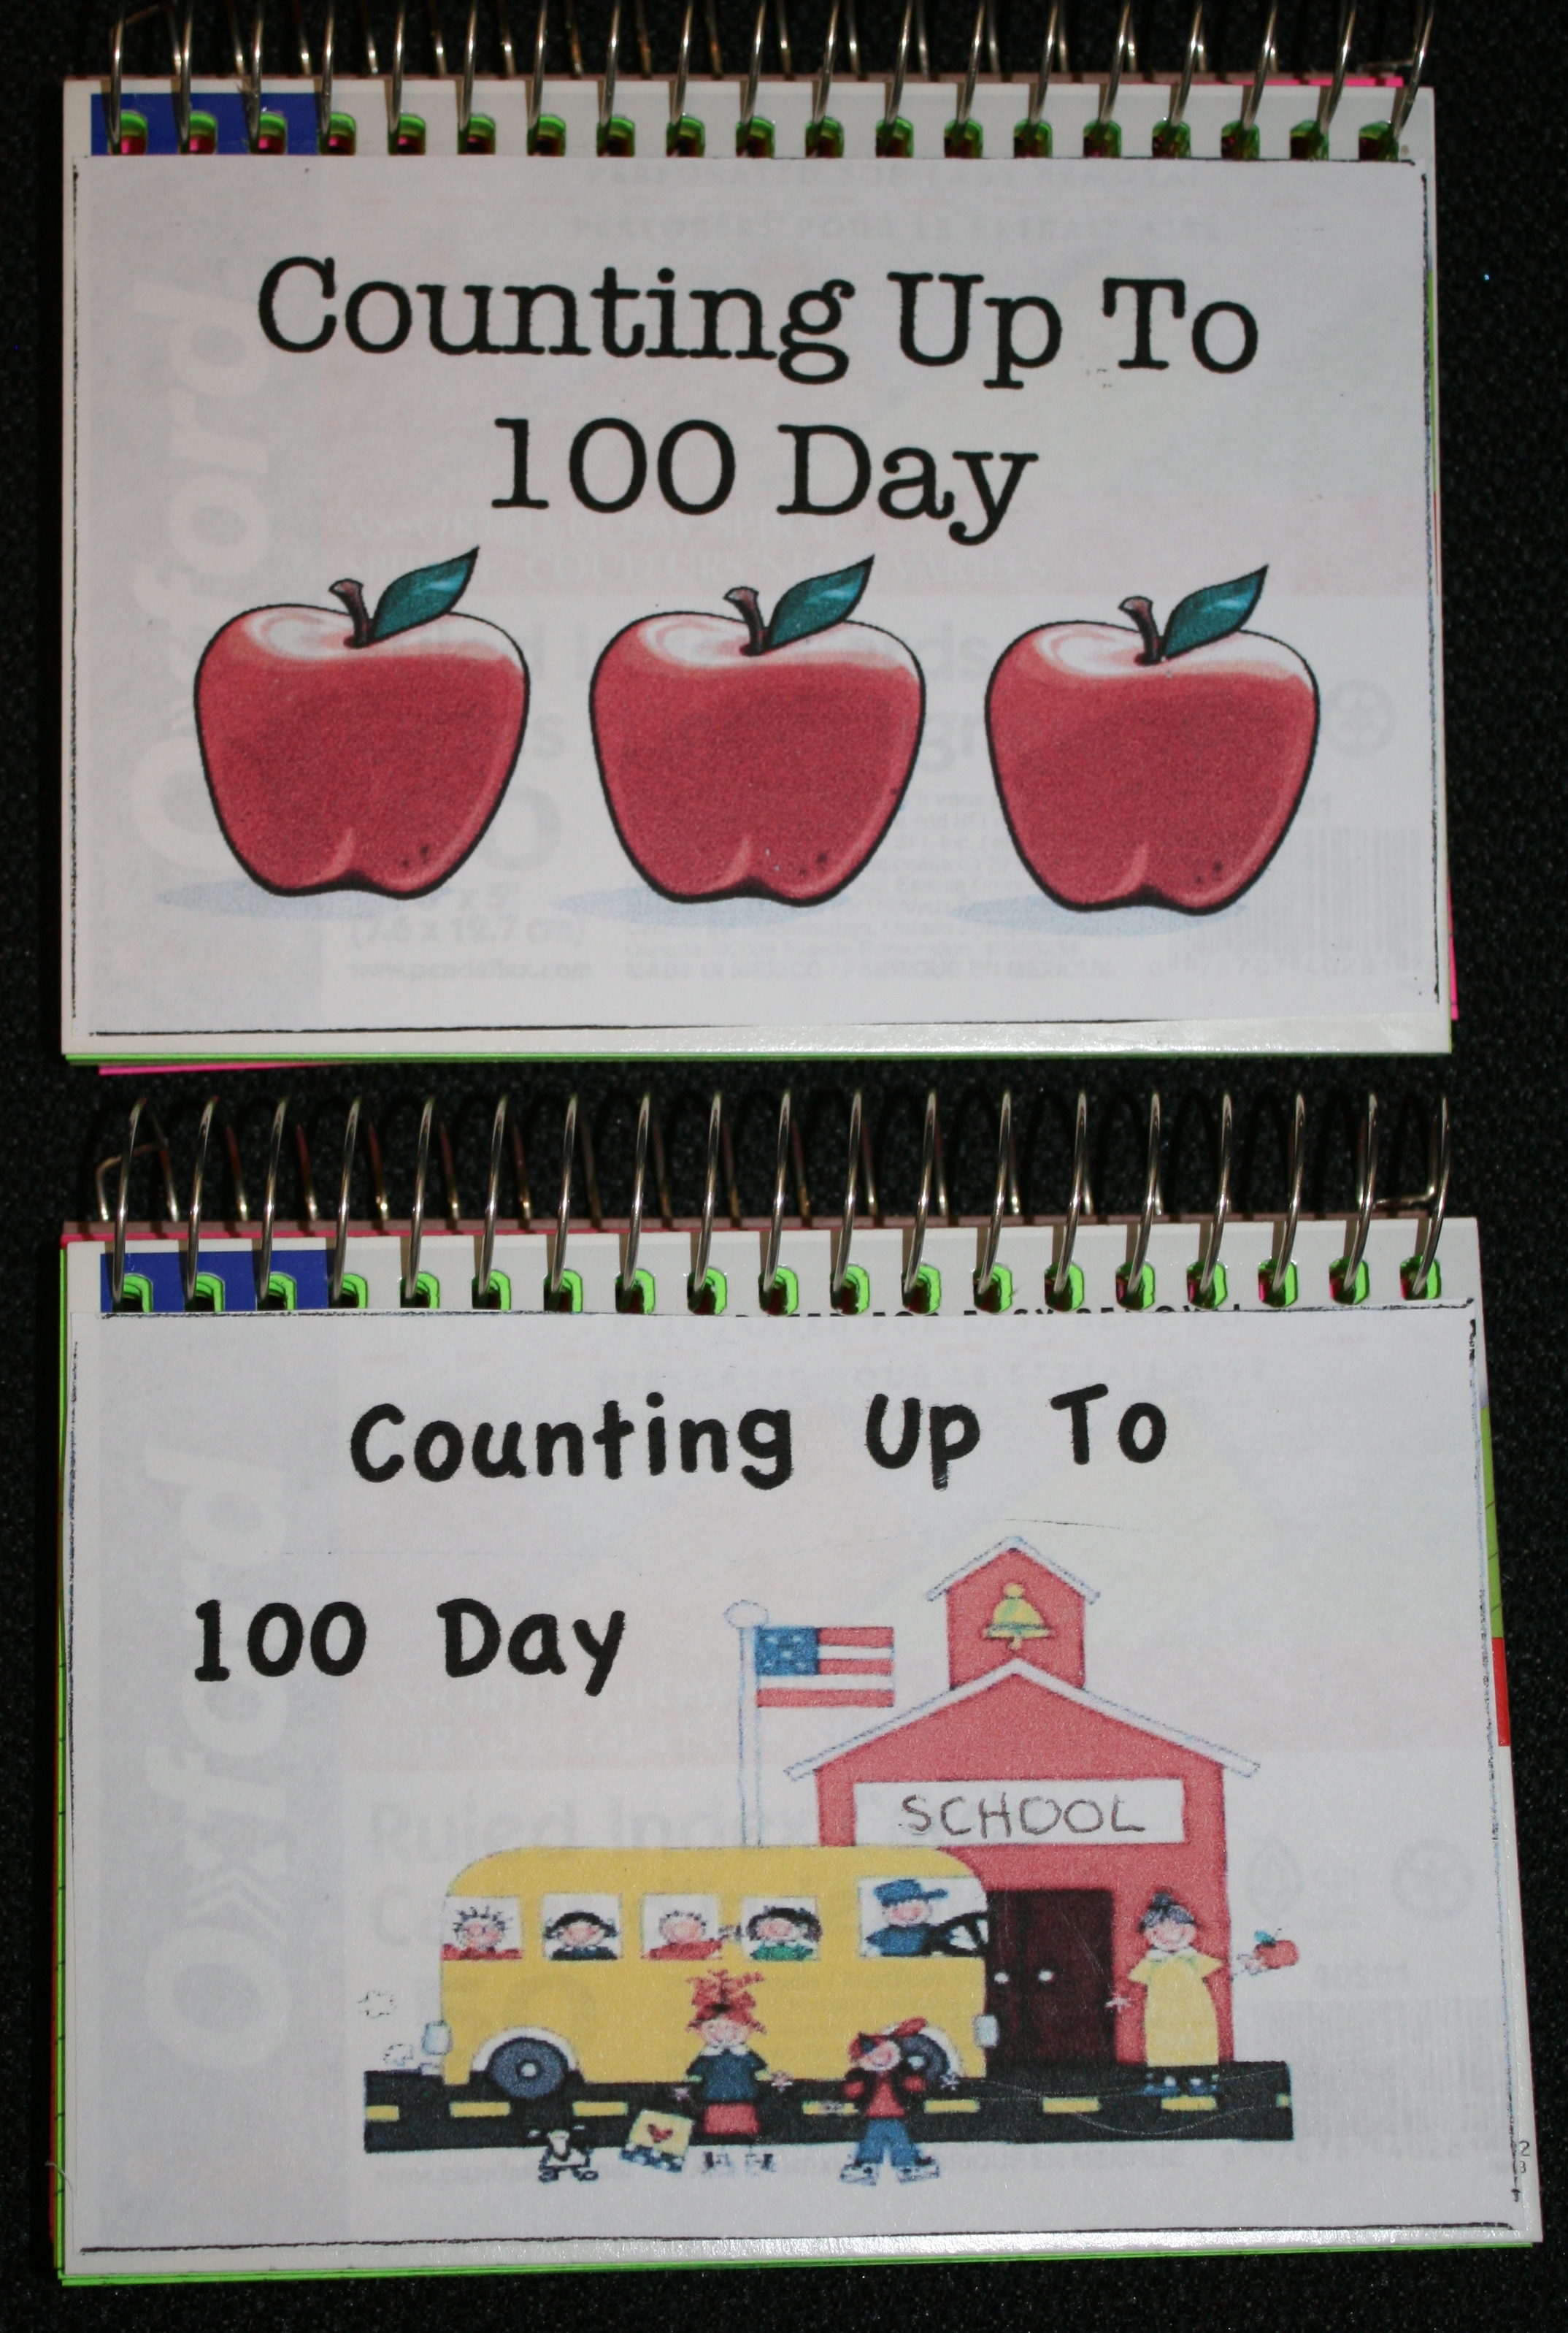 back to school ideas, ideas for the first day of school, counting up to 100 day ideas